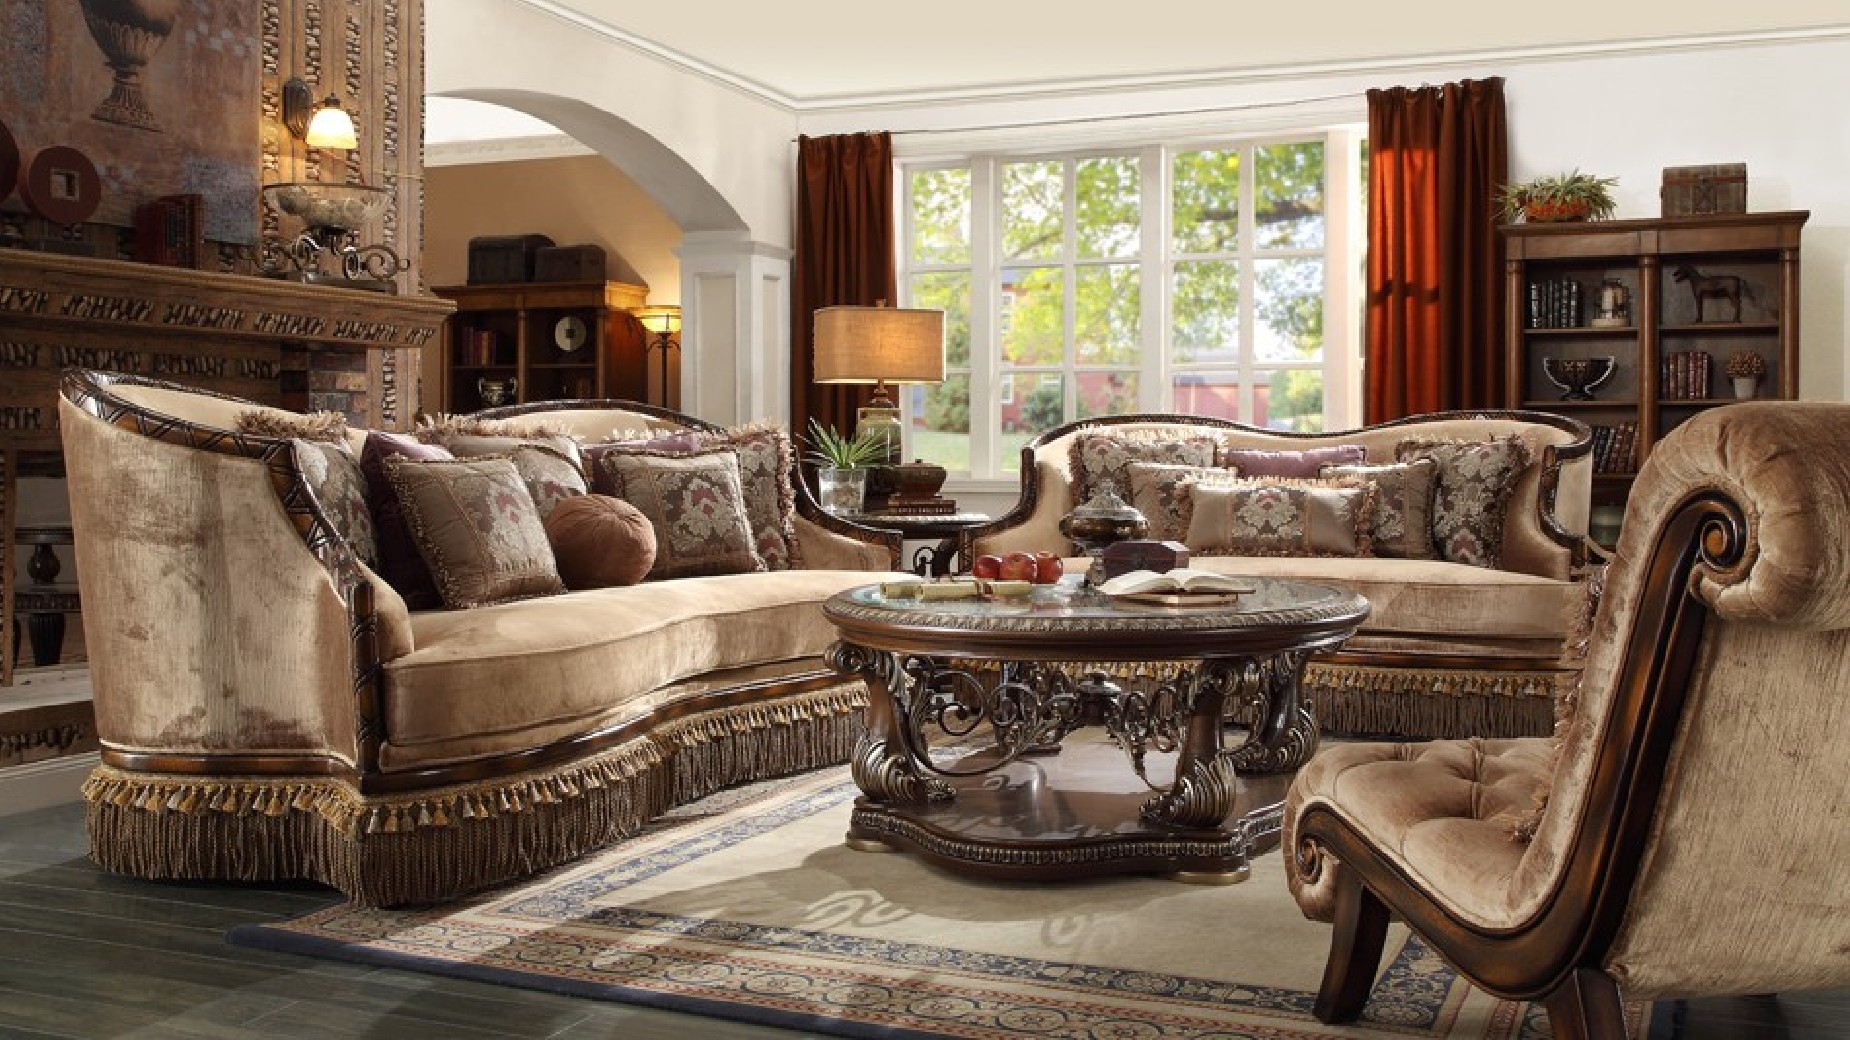 Hd 1631 Homey Design Upholstery Living Room Set Victorian with 15 Awesome Designs of How to Makeover Free Living Room Set